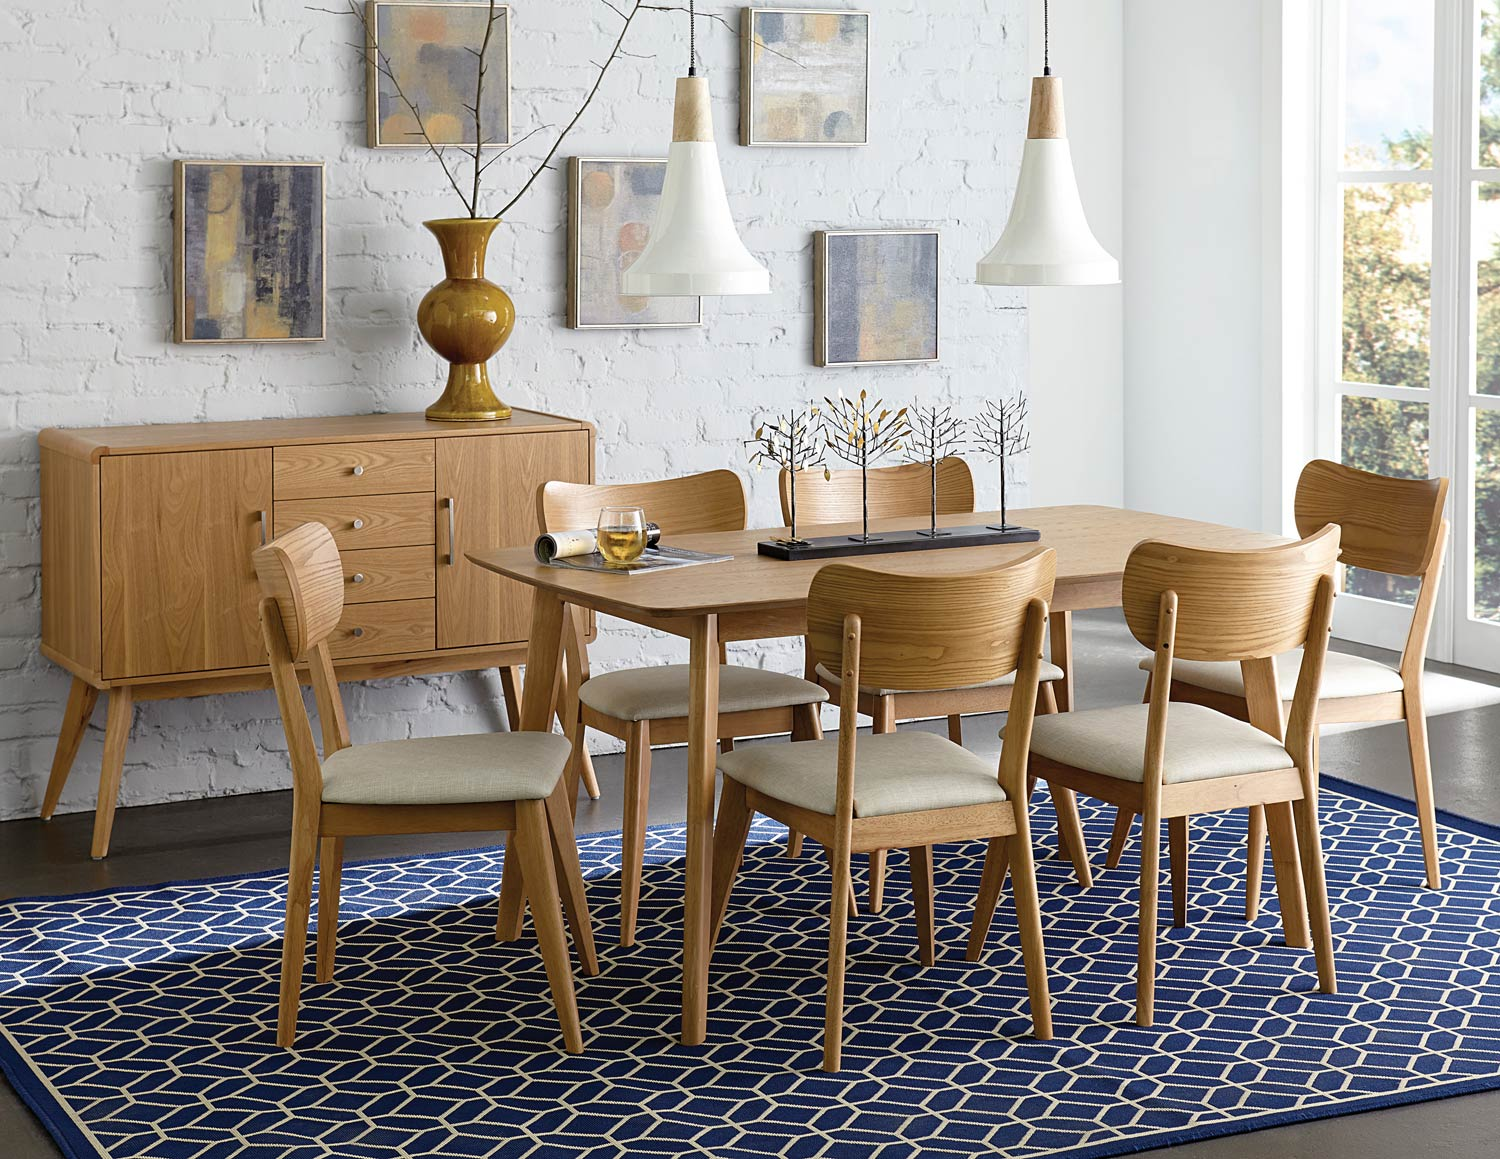 ... 7pc Dining Room Set Click To Enlarge ... & Home Elegance Anika Ash 7pc Dining Room Set | The Classy Home